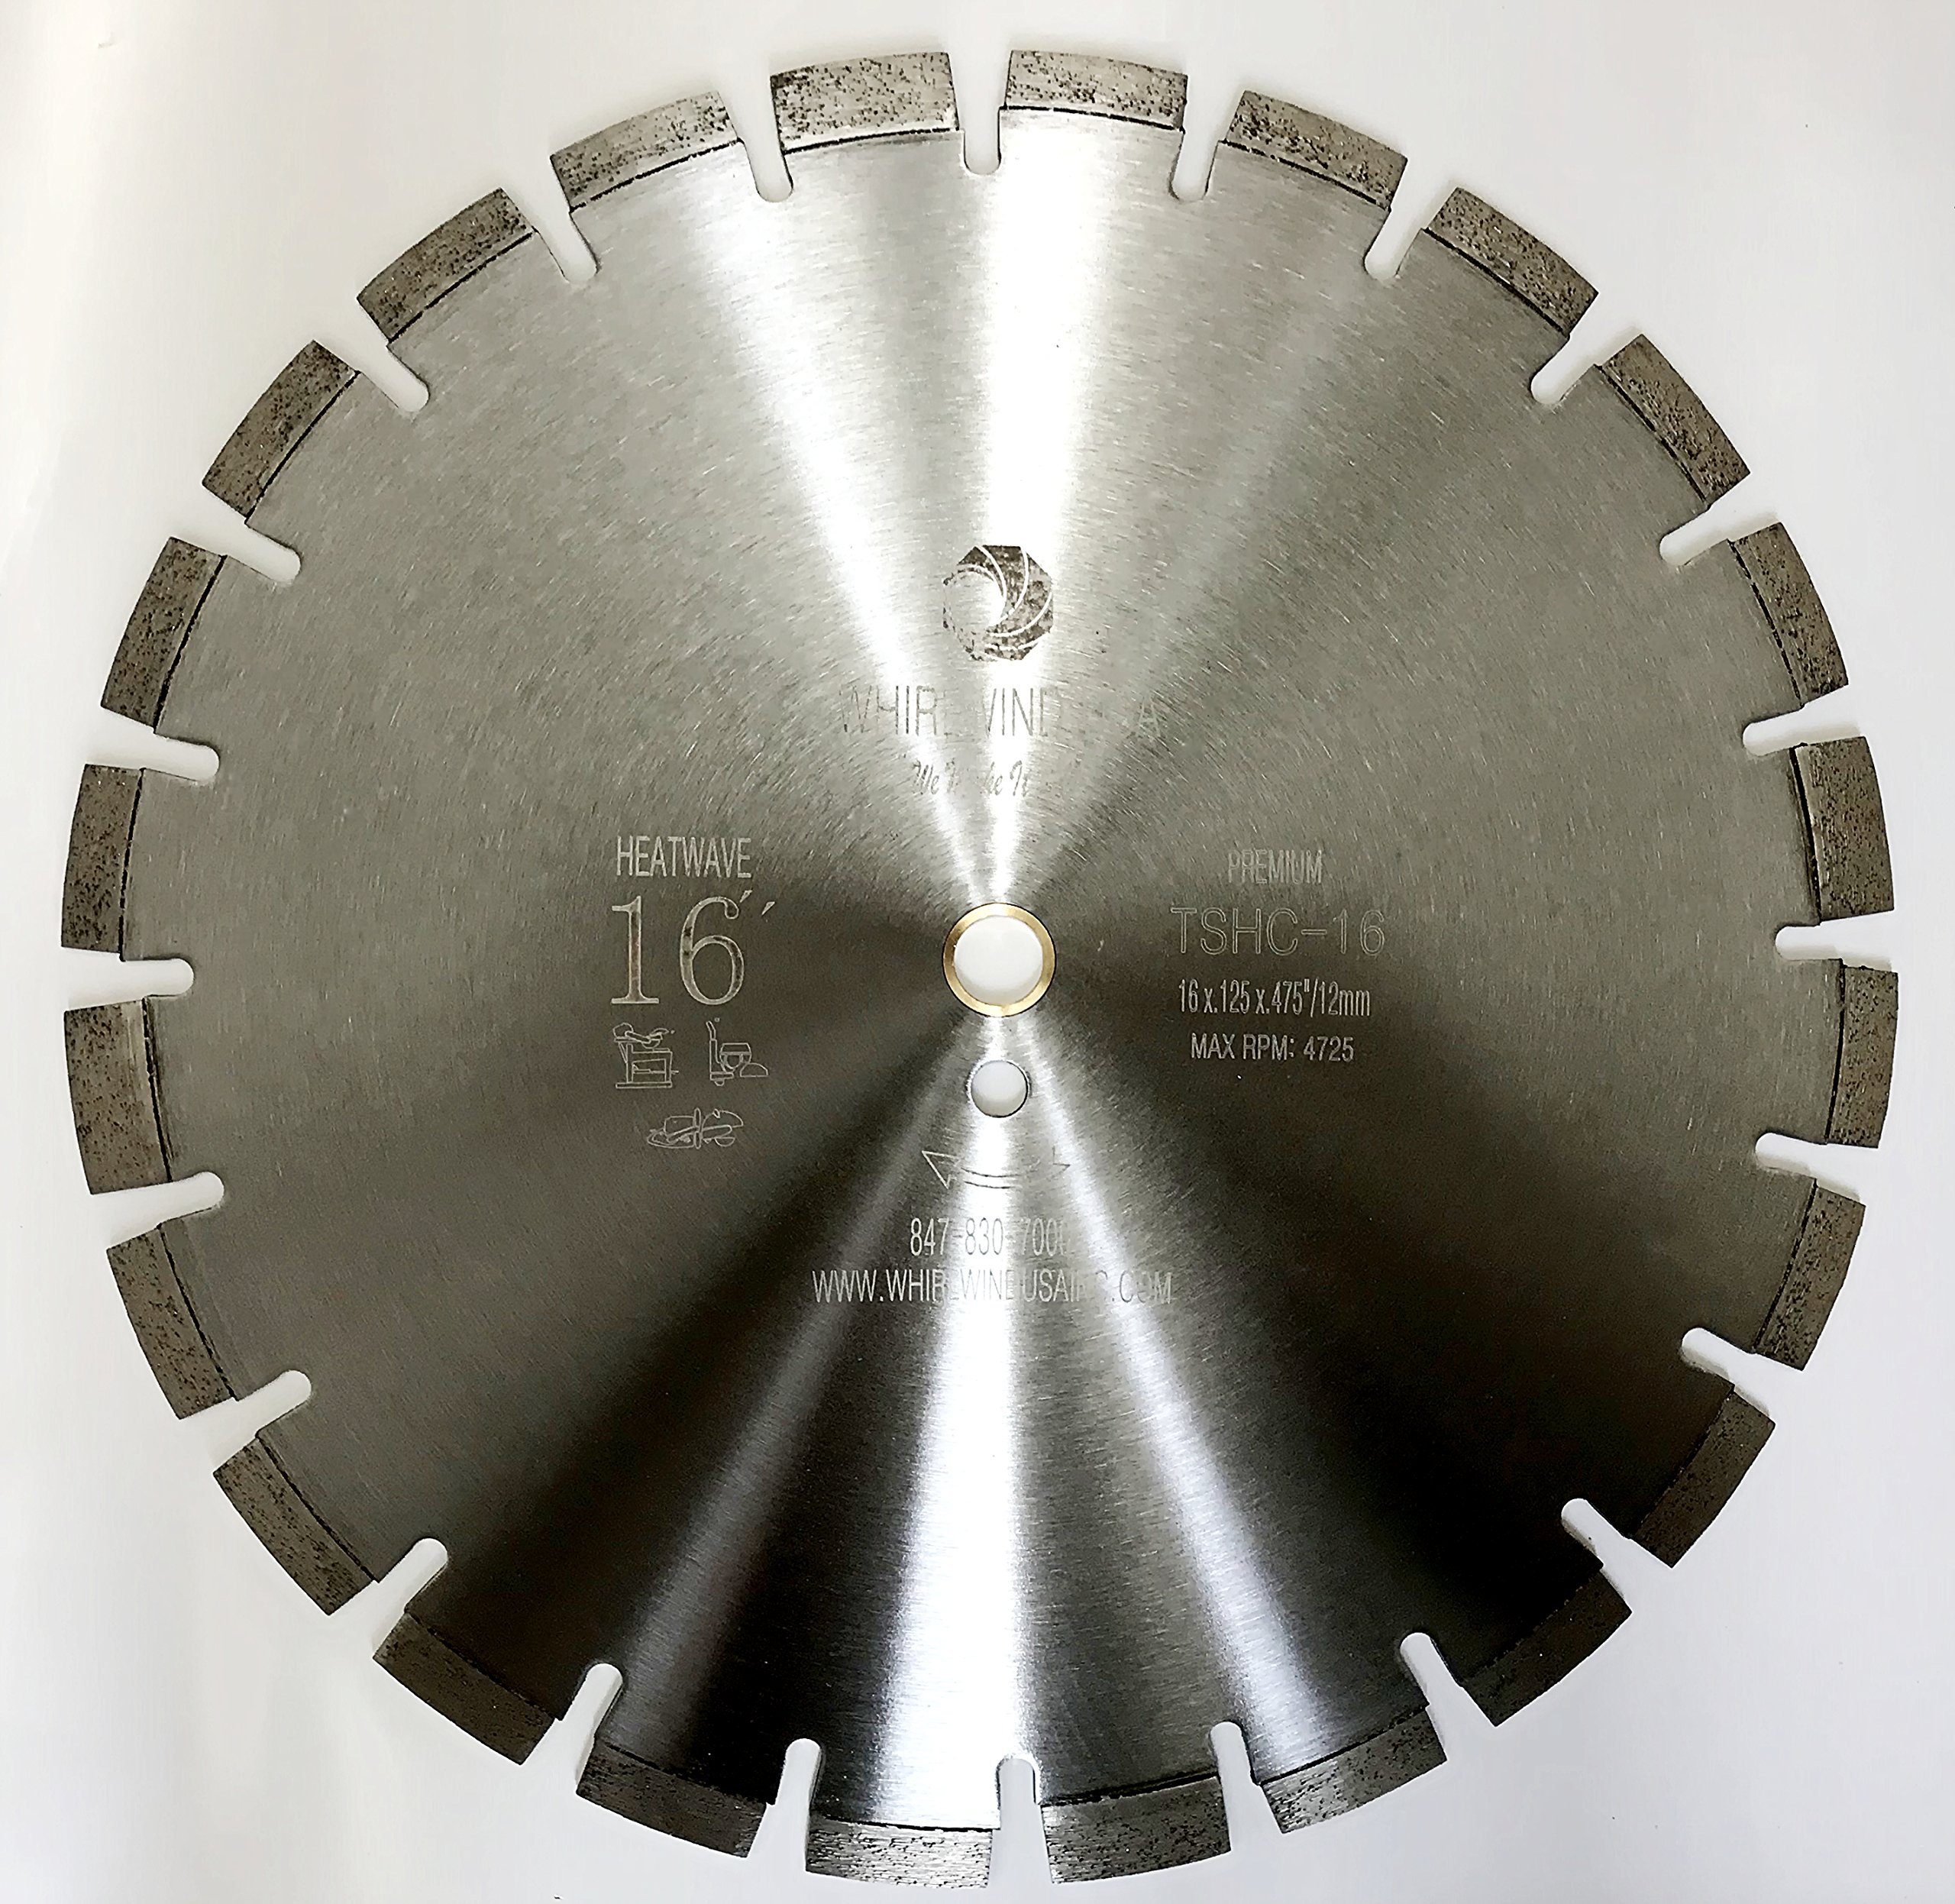 Whirlwind USA 16 inch Heatwave Dry Concrete Cutting Laser Welded Segmented Diamond Saw Blades (16'') by WHIRLWIND USA